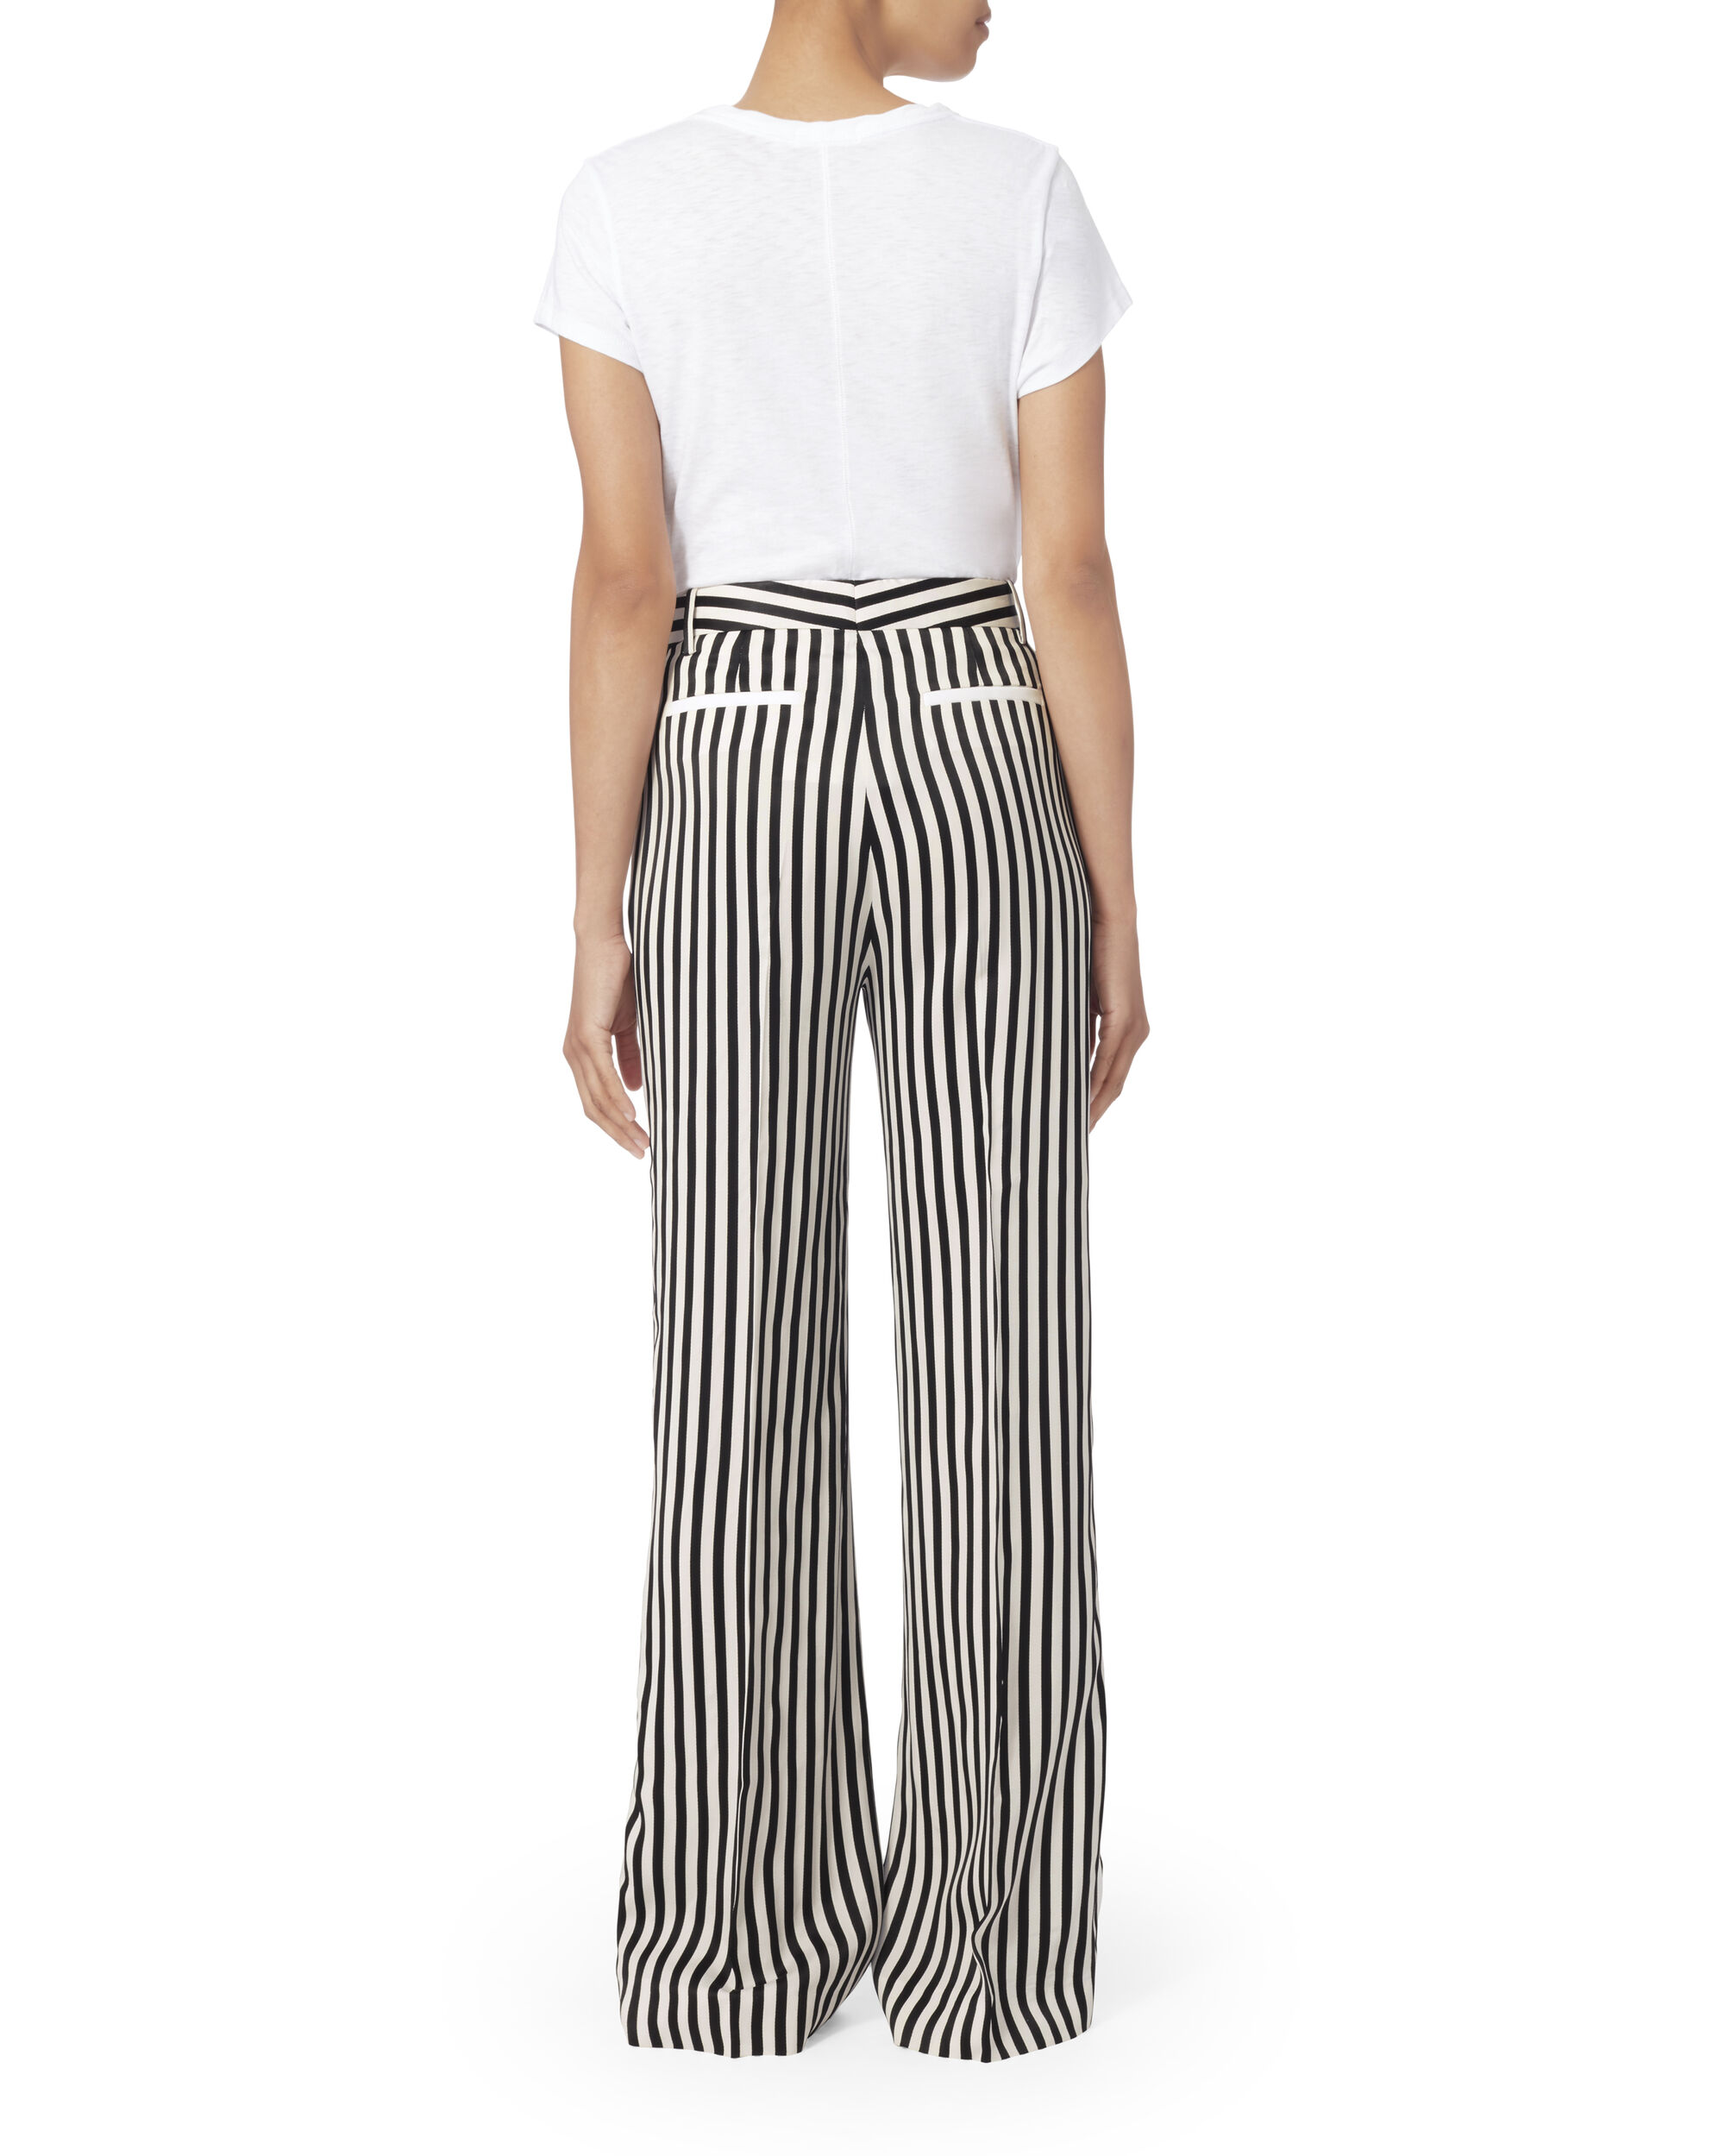 Relaxed Tuxedo Pants, BLK/WHT, hi-res